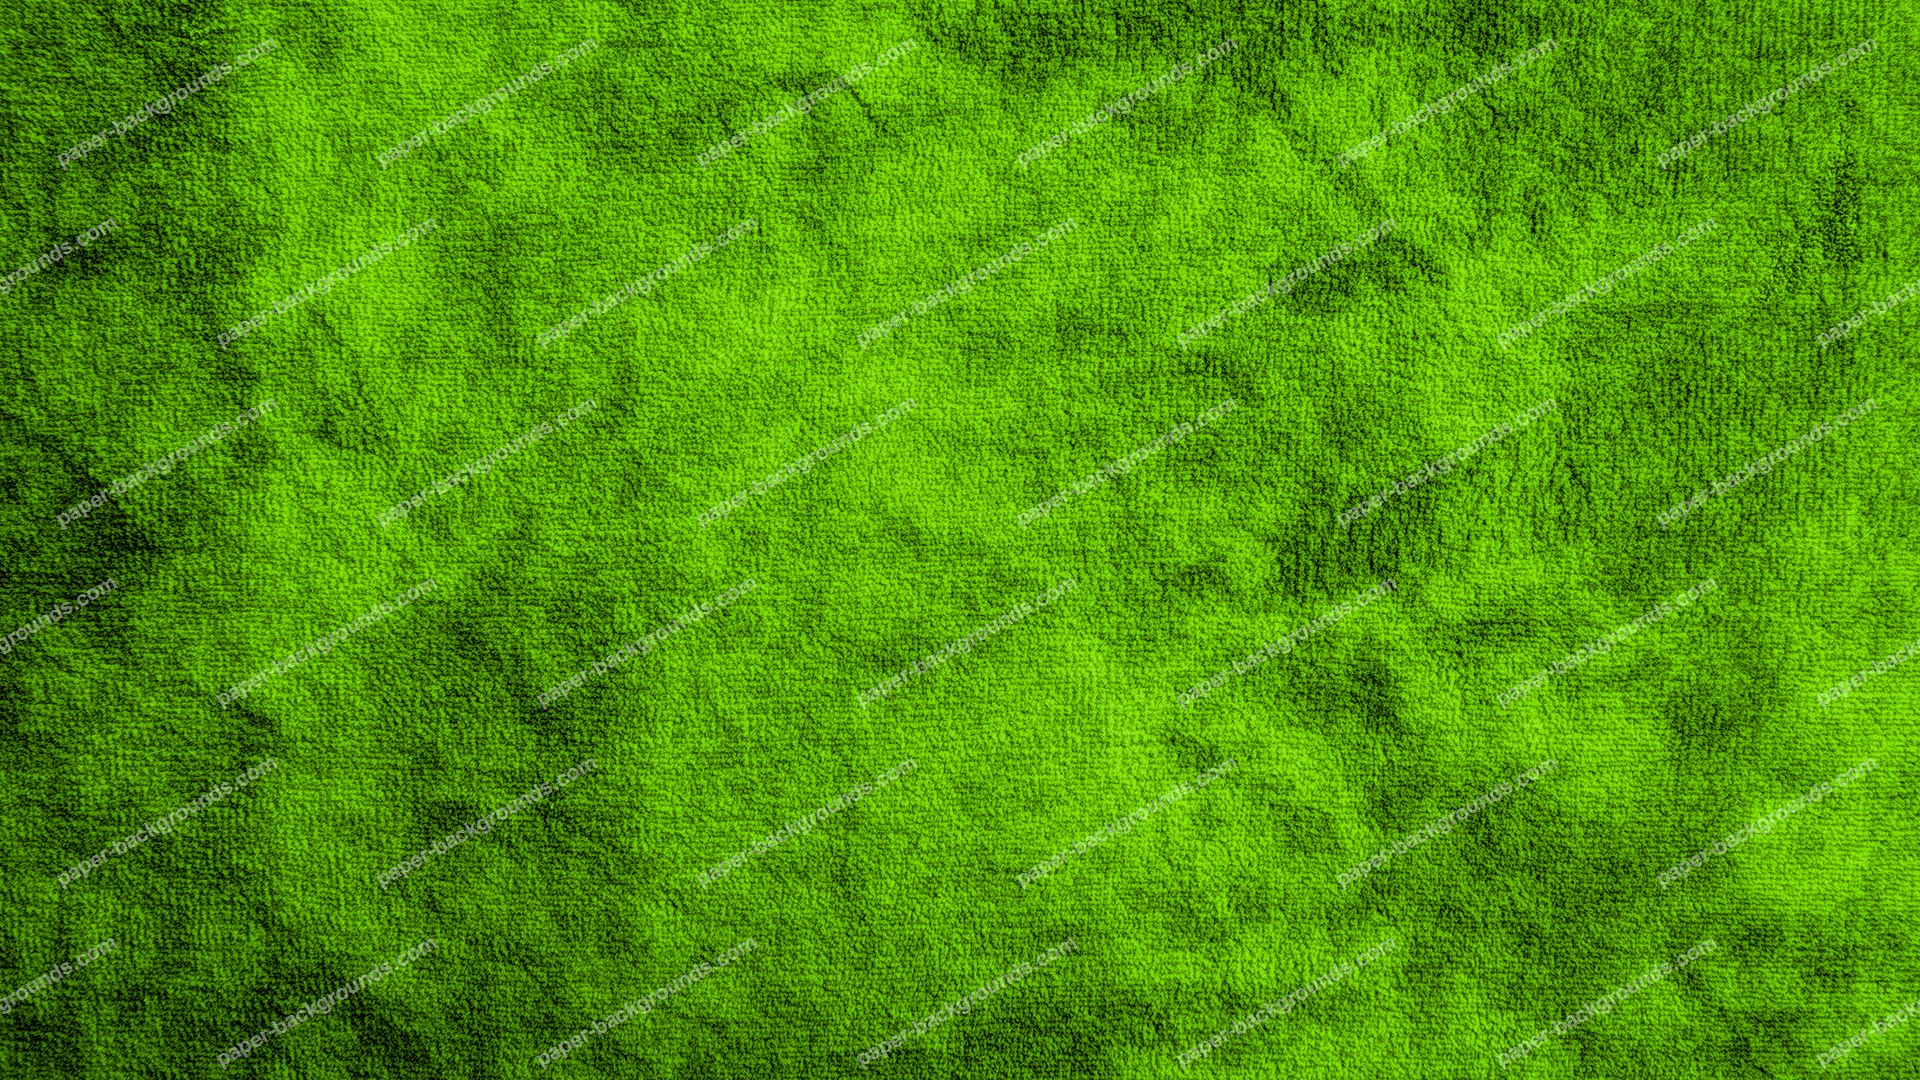 Green Fine Fur Texture HD 1920 x 1080p